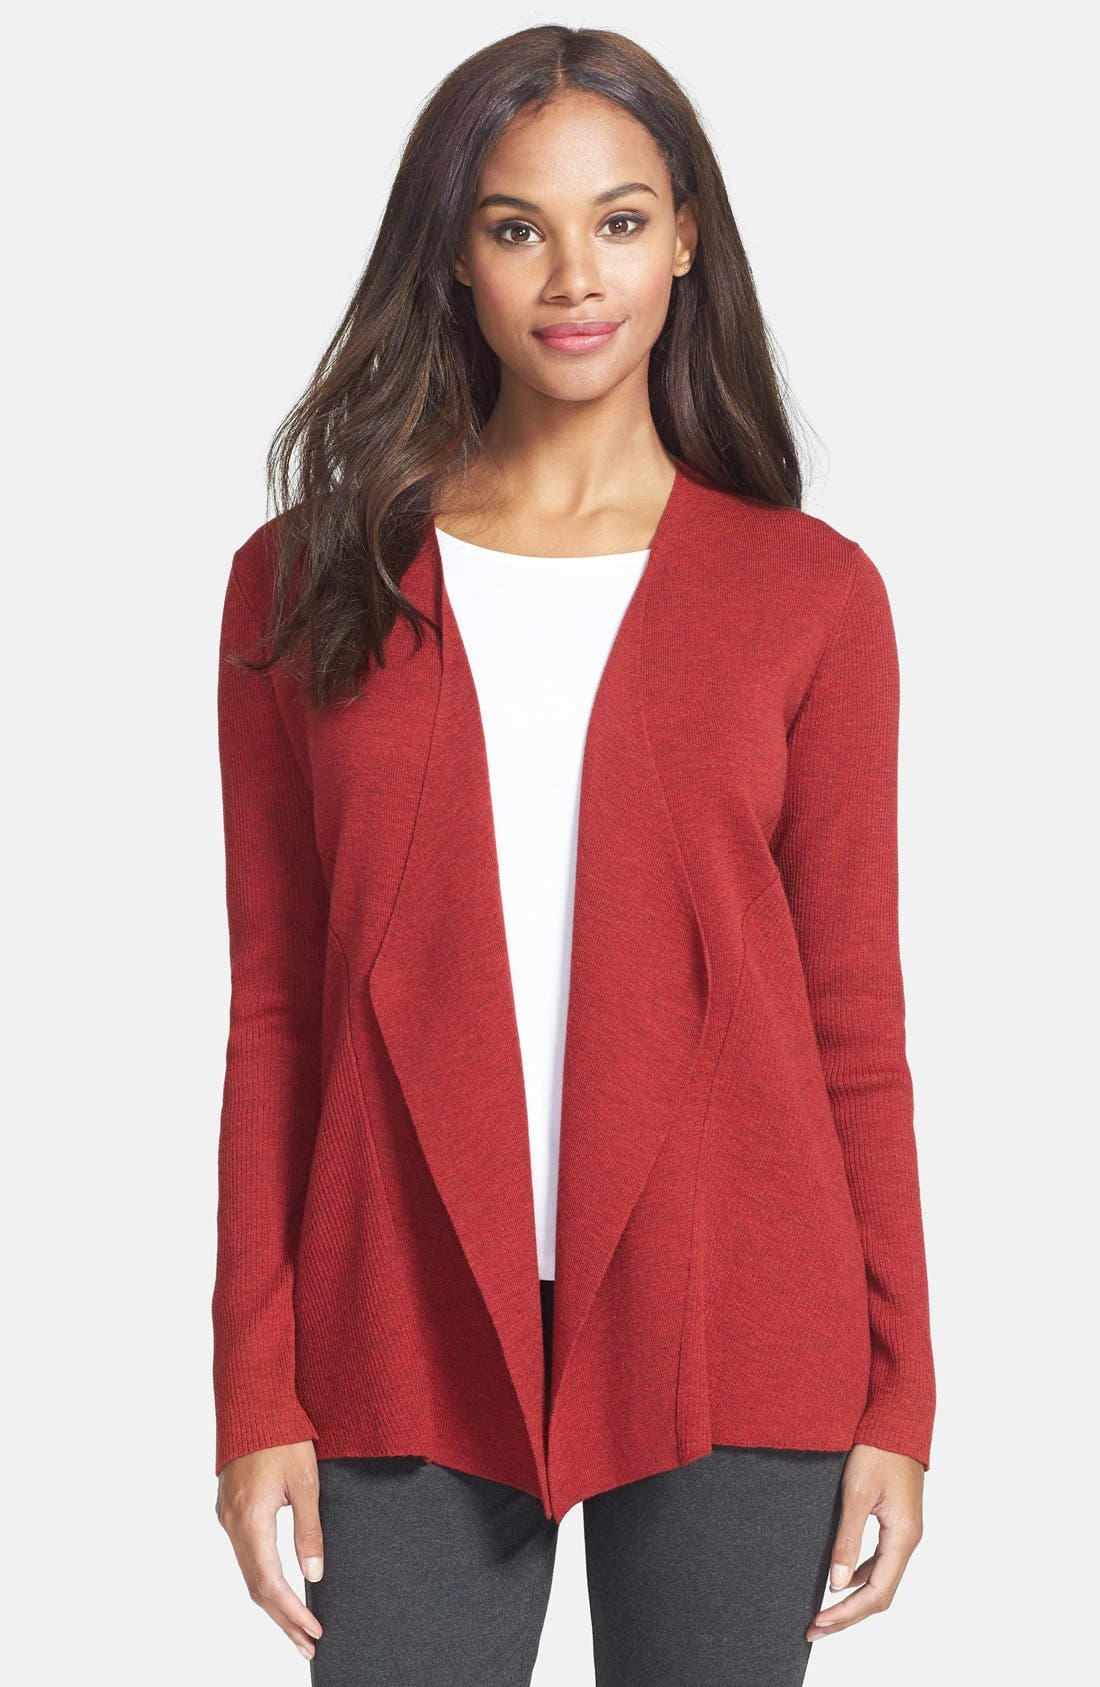 Alternate Image 1 Selected - Eileen Fisher Angled Front Shaped Cardigan (Regular & Petite)